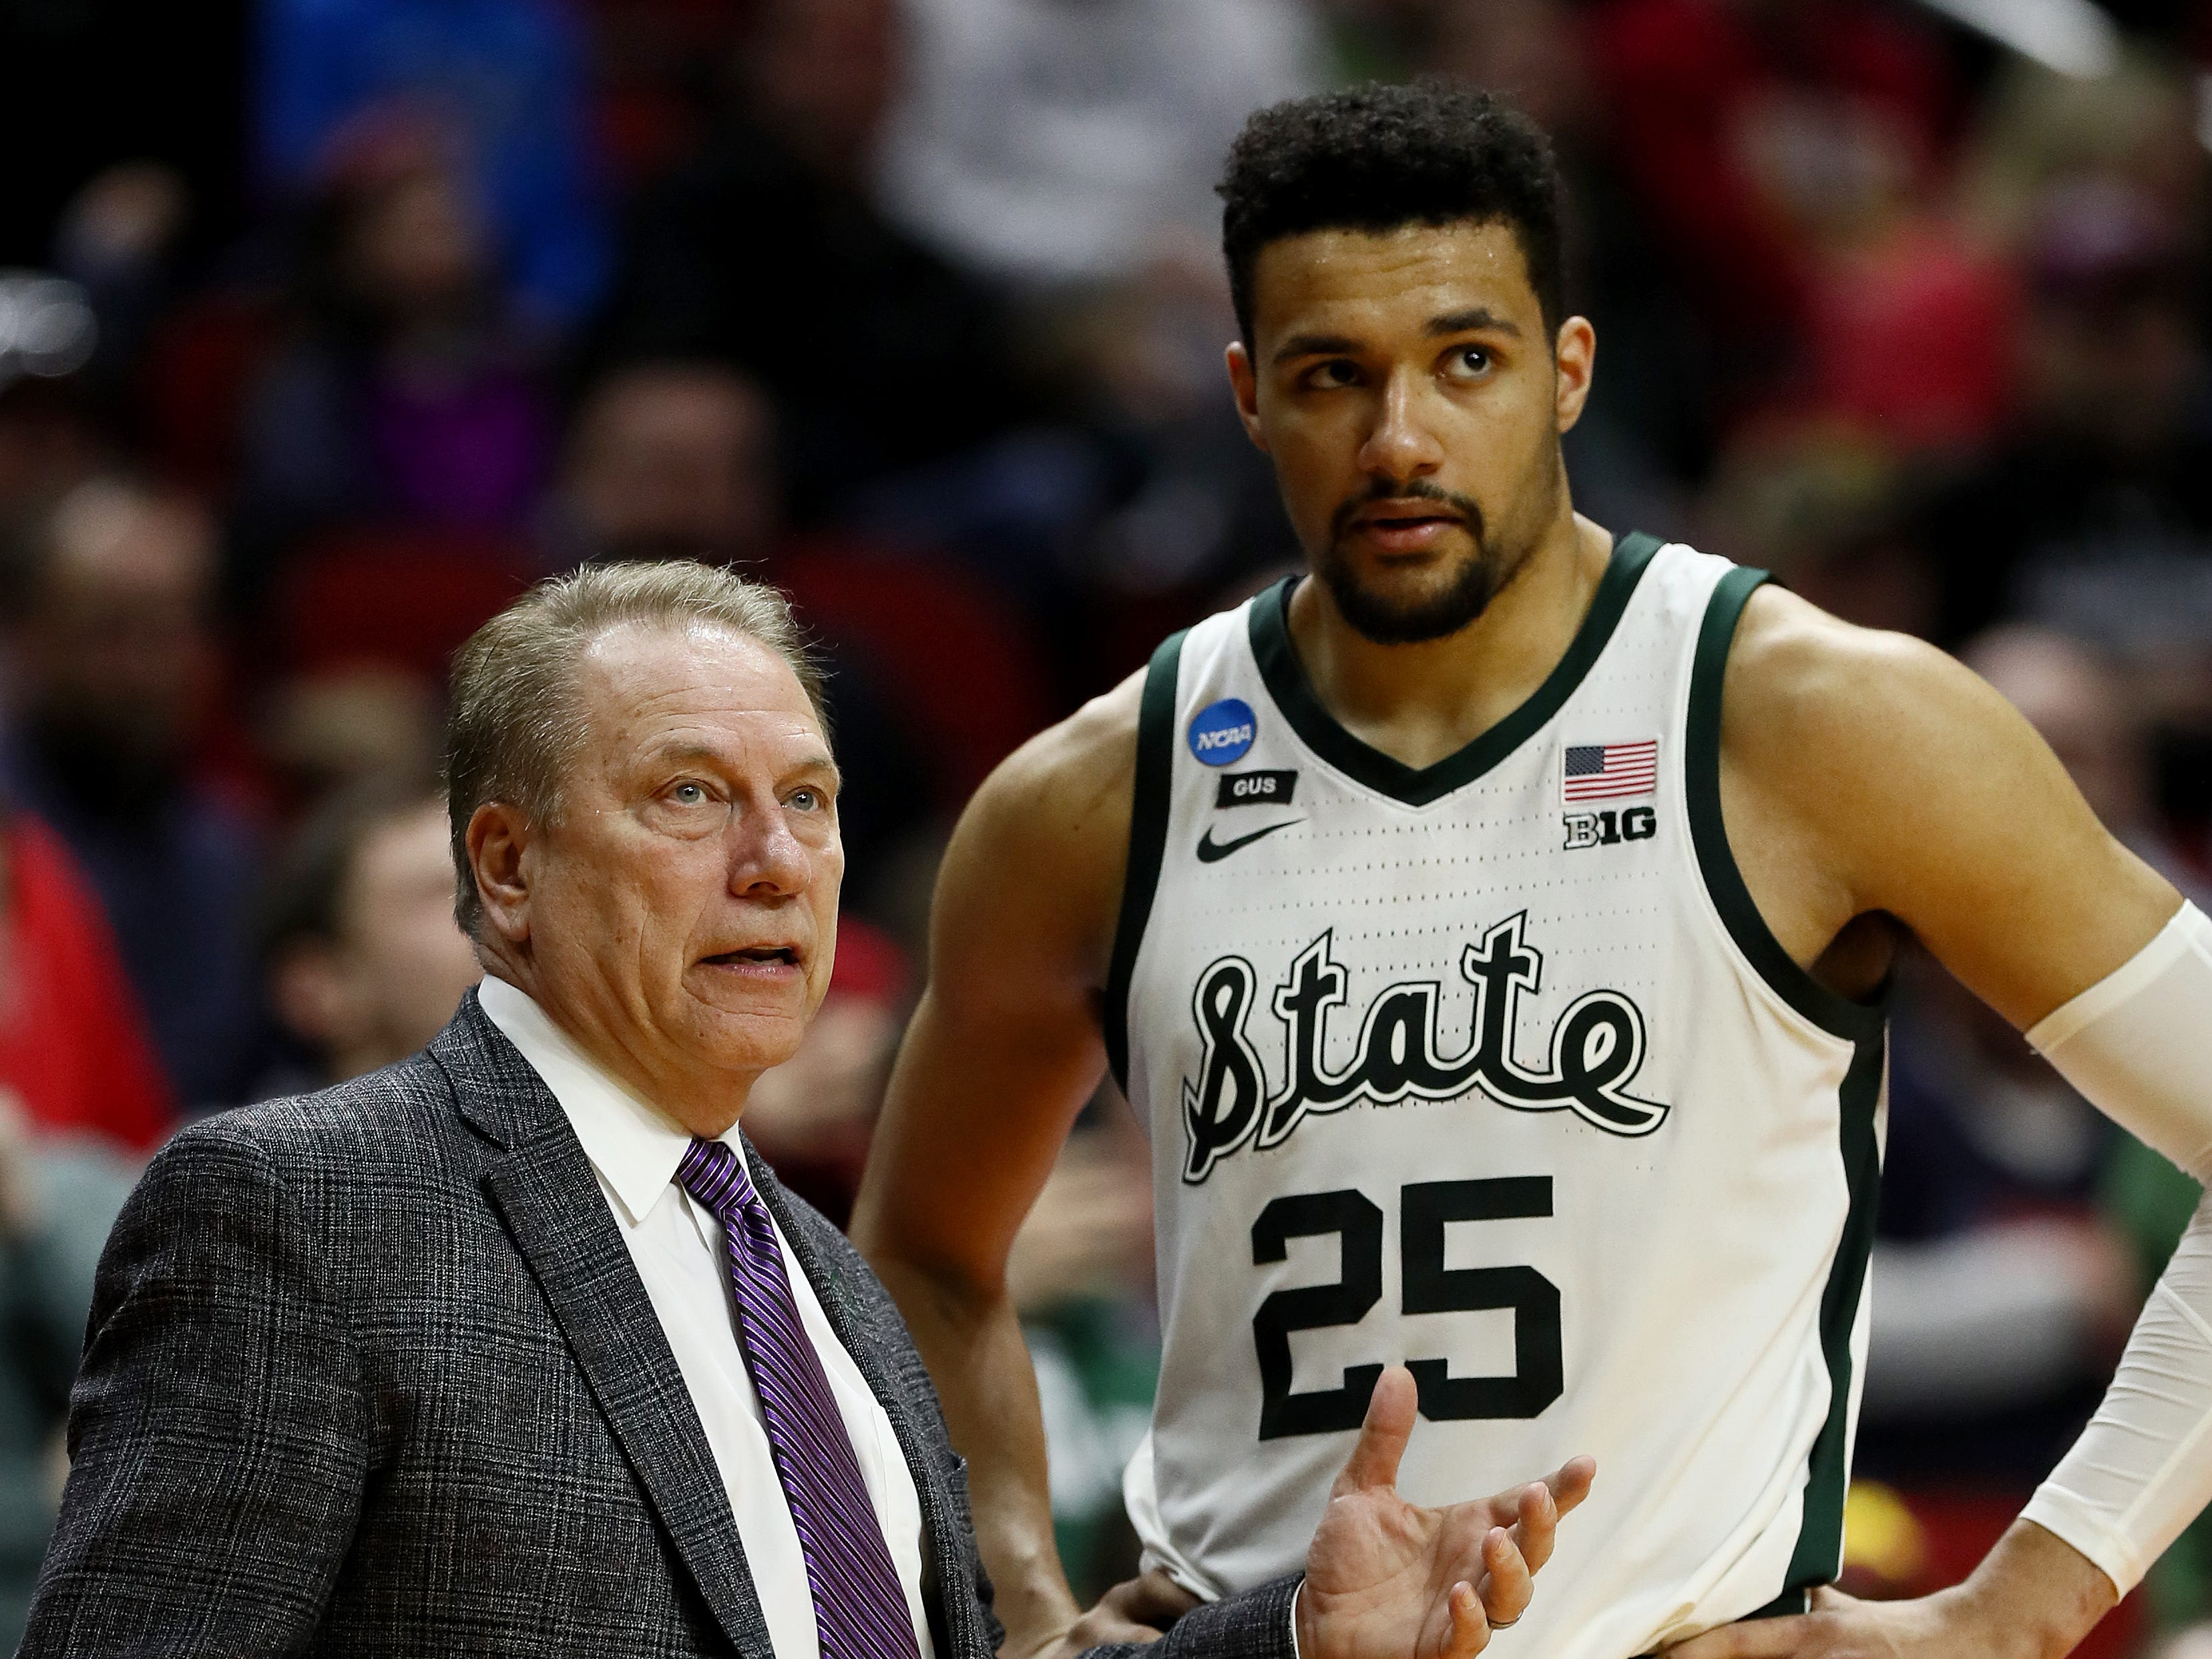 Head coach Tom Izzo of the Michigan State Spartans speaks with Kenny Goins #25 during their game in the First Round of the NCAA Basketball Tournament against the Bradley Braves at Wells Fargo Arena on March 21, 2019 in Des Moines, Iowa.